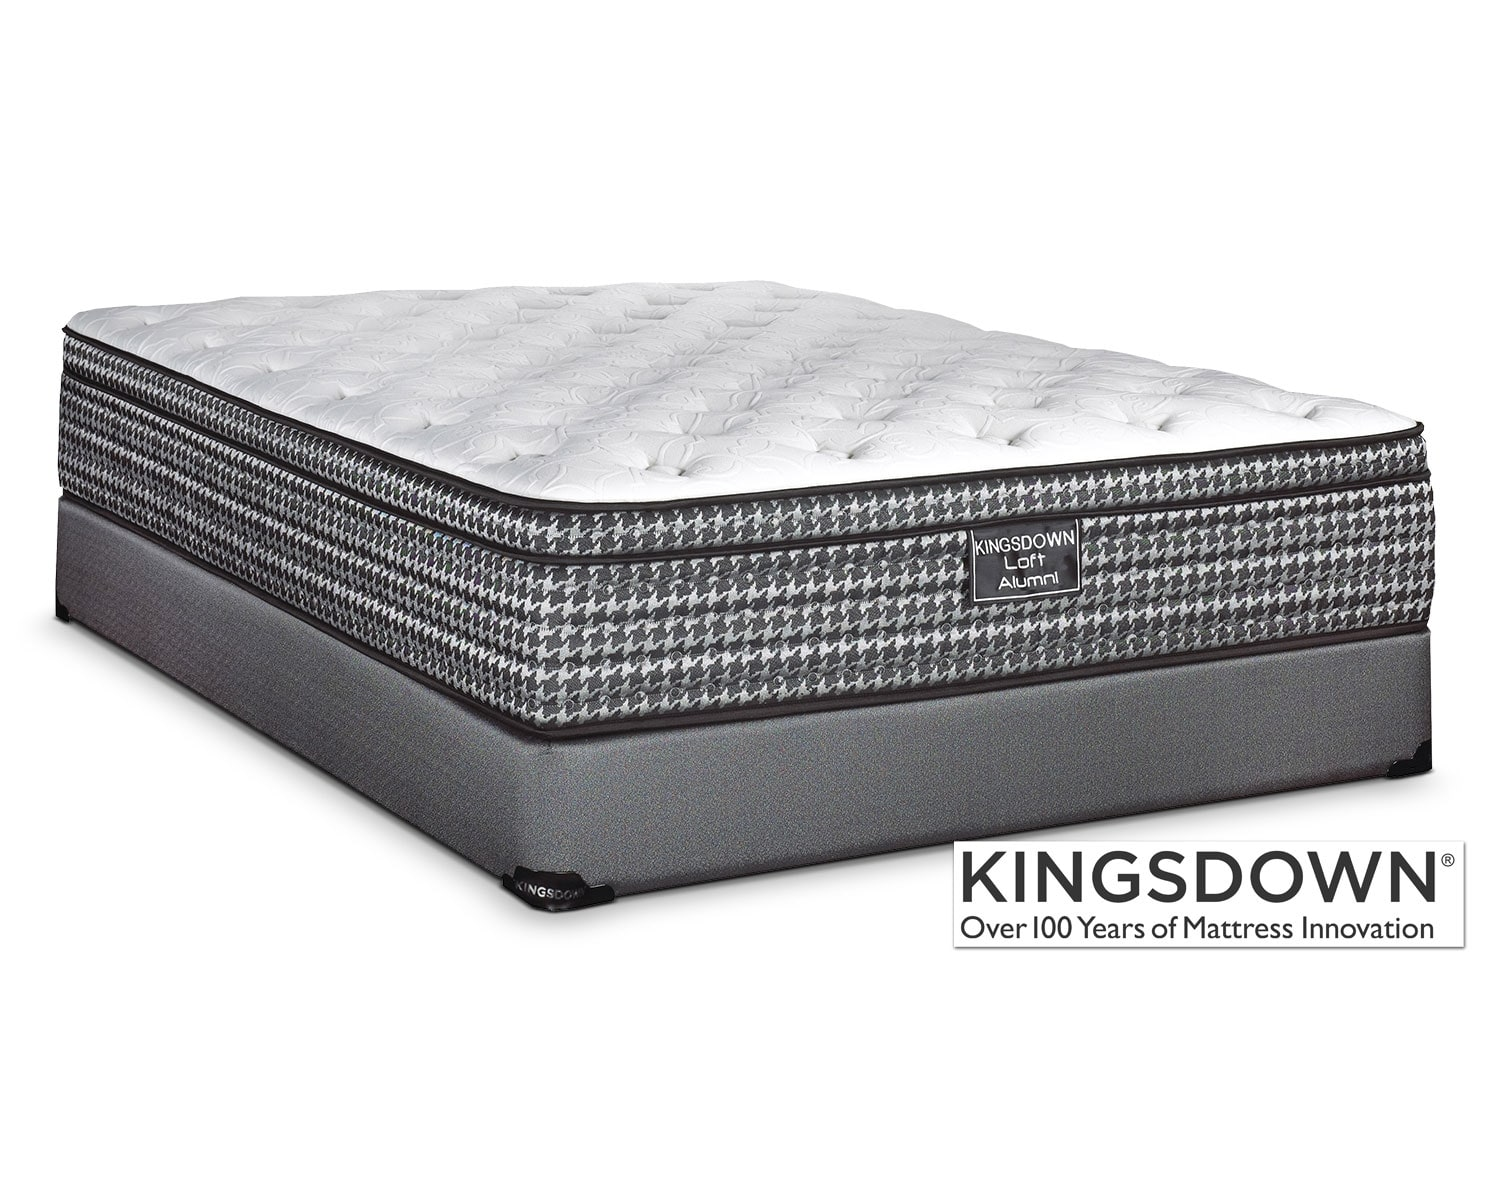 The Kingsdown Alumni Mattress Collection